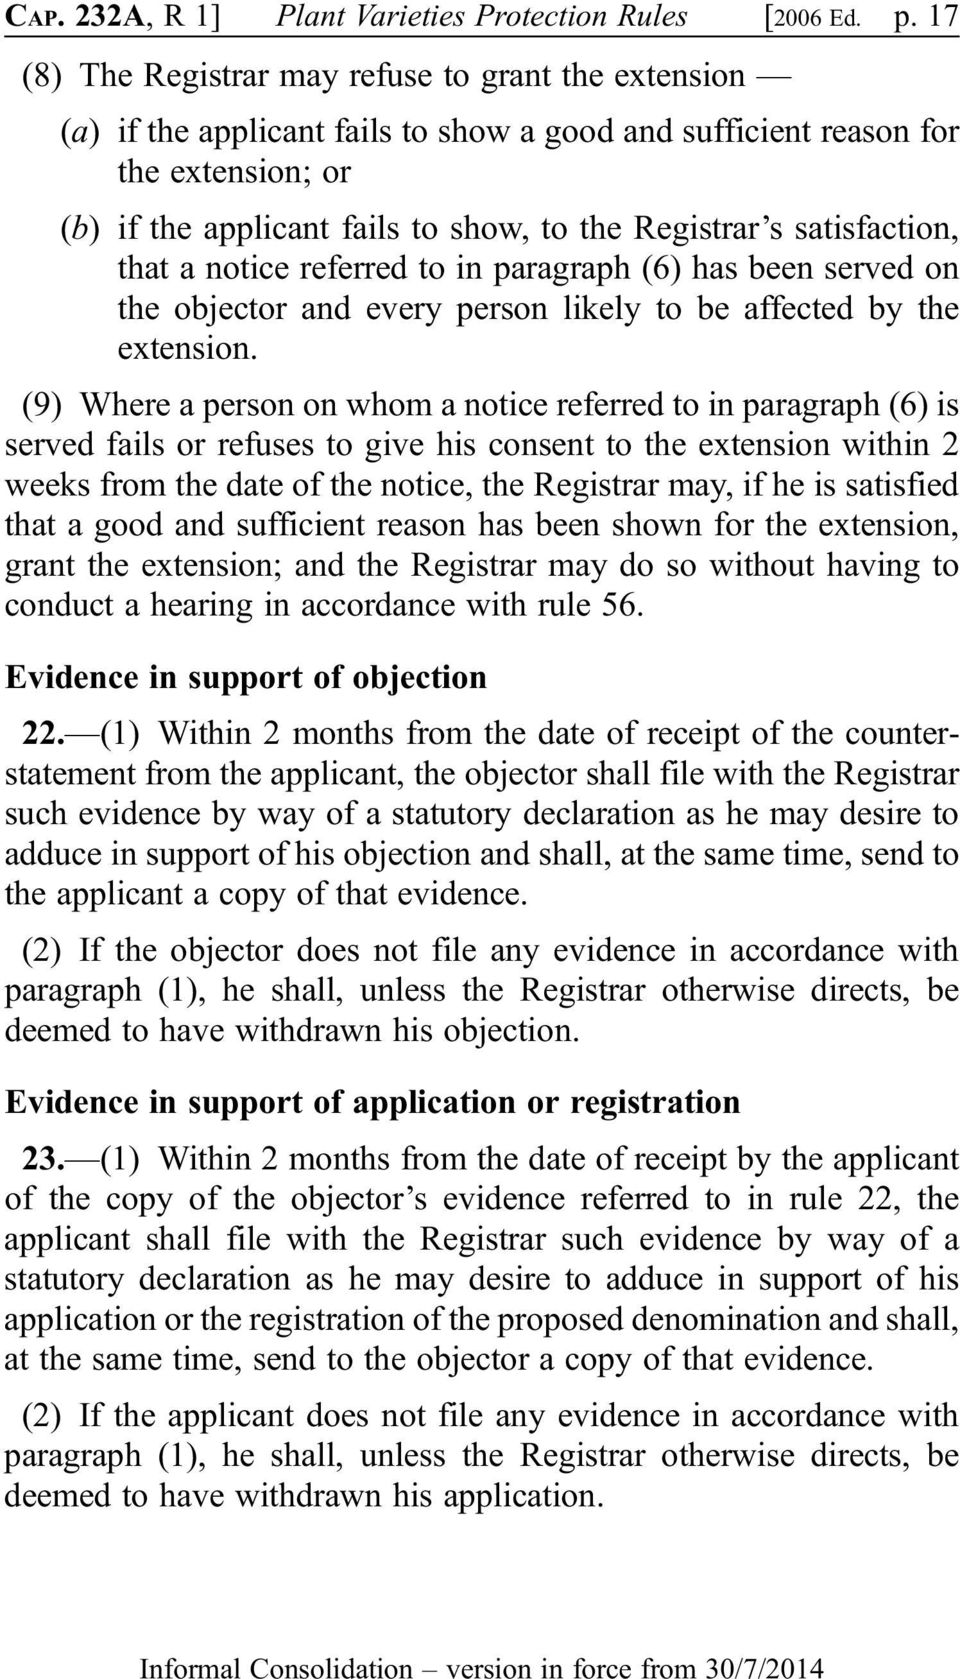 satisfaction, that a notice referred to in paragraph (6) has been served on the objector and every person likely to be affected by the extension.